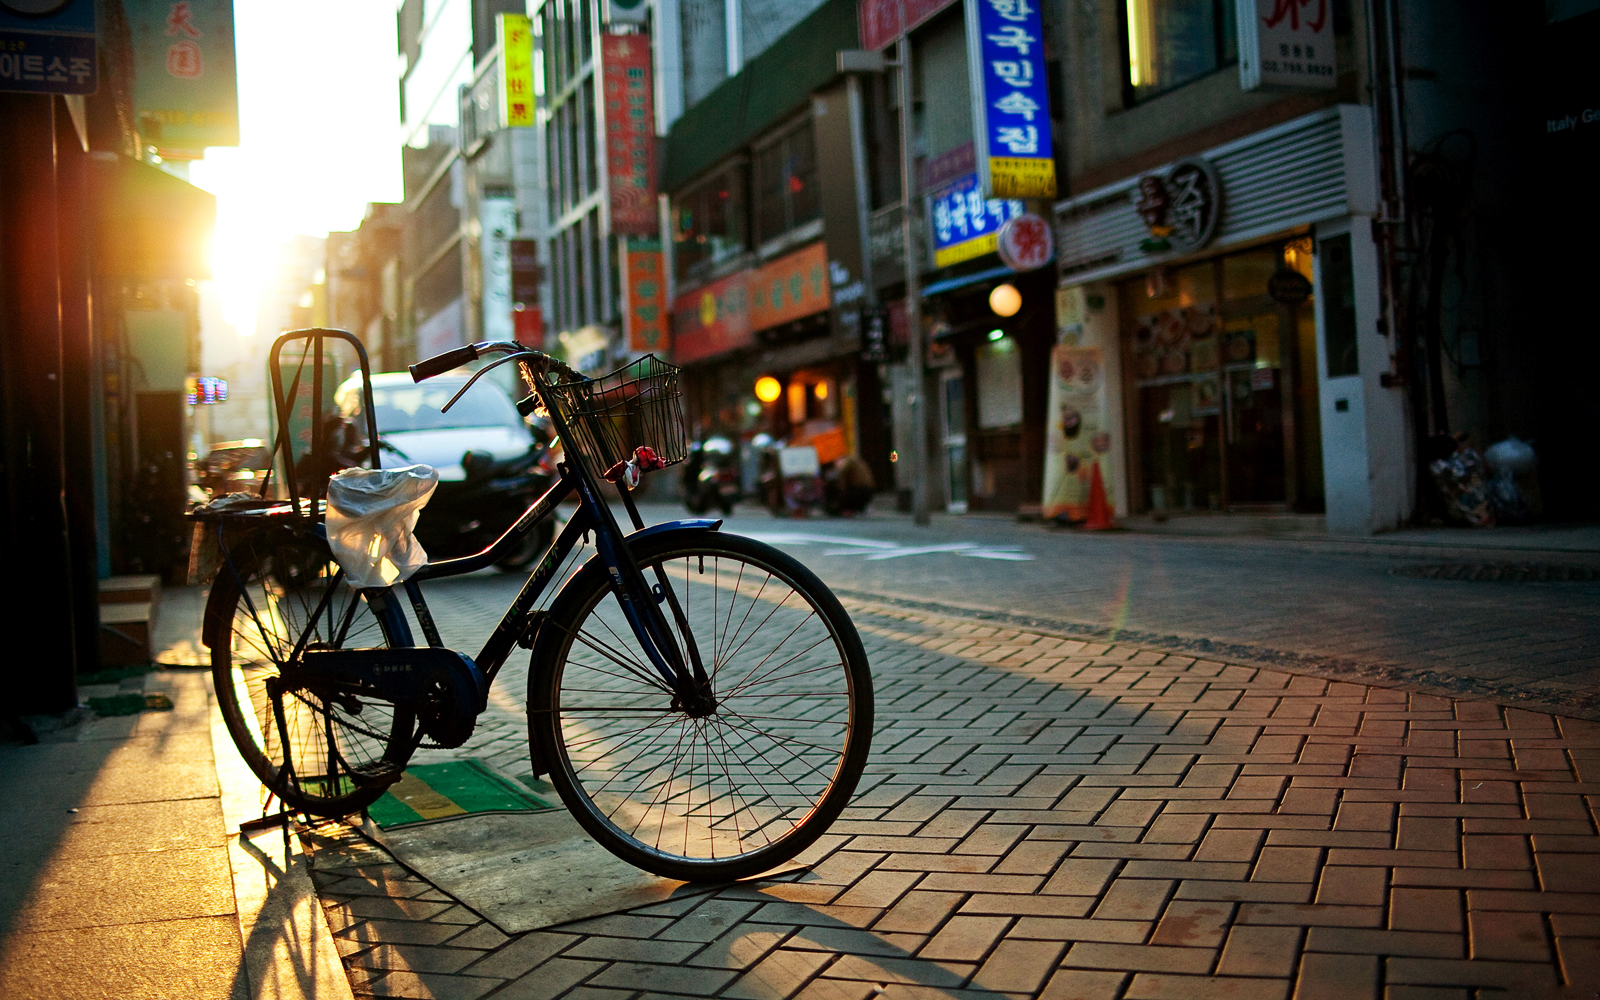 Vintage_Bicycle_Asia_Street_Cityscape_HD_Wallpaper-Vvallpaper.Net_